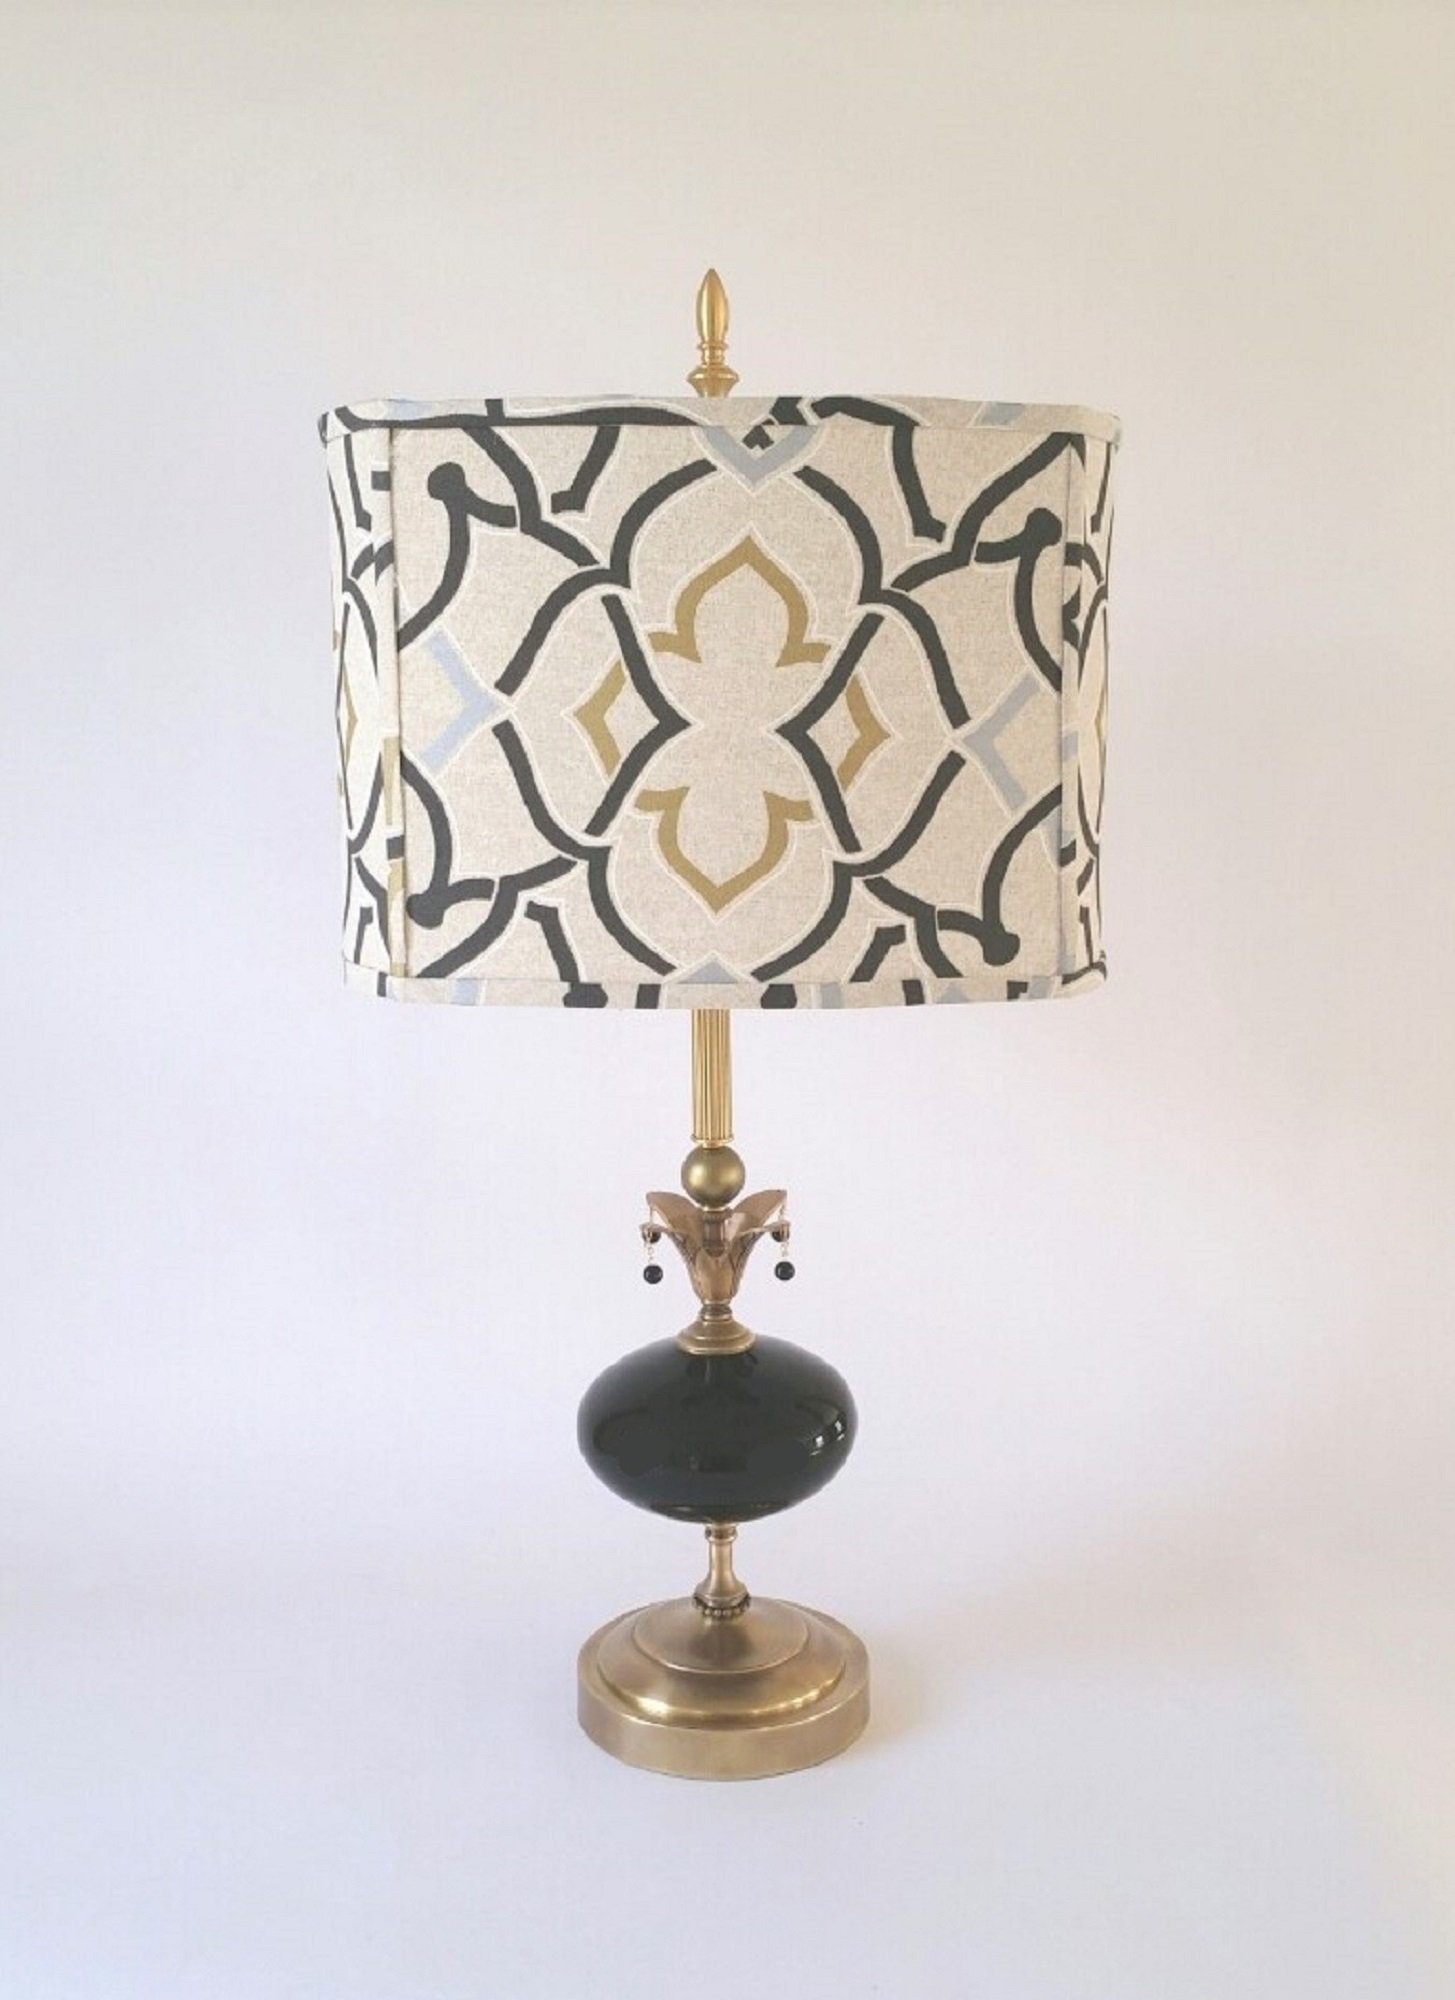 Moroccan Table Lamp By Mollie Woods Mixed Media Table Lamp Artful Home